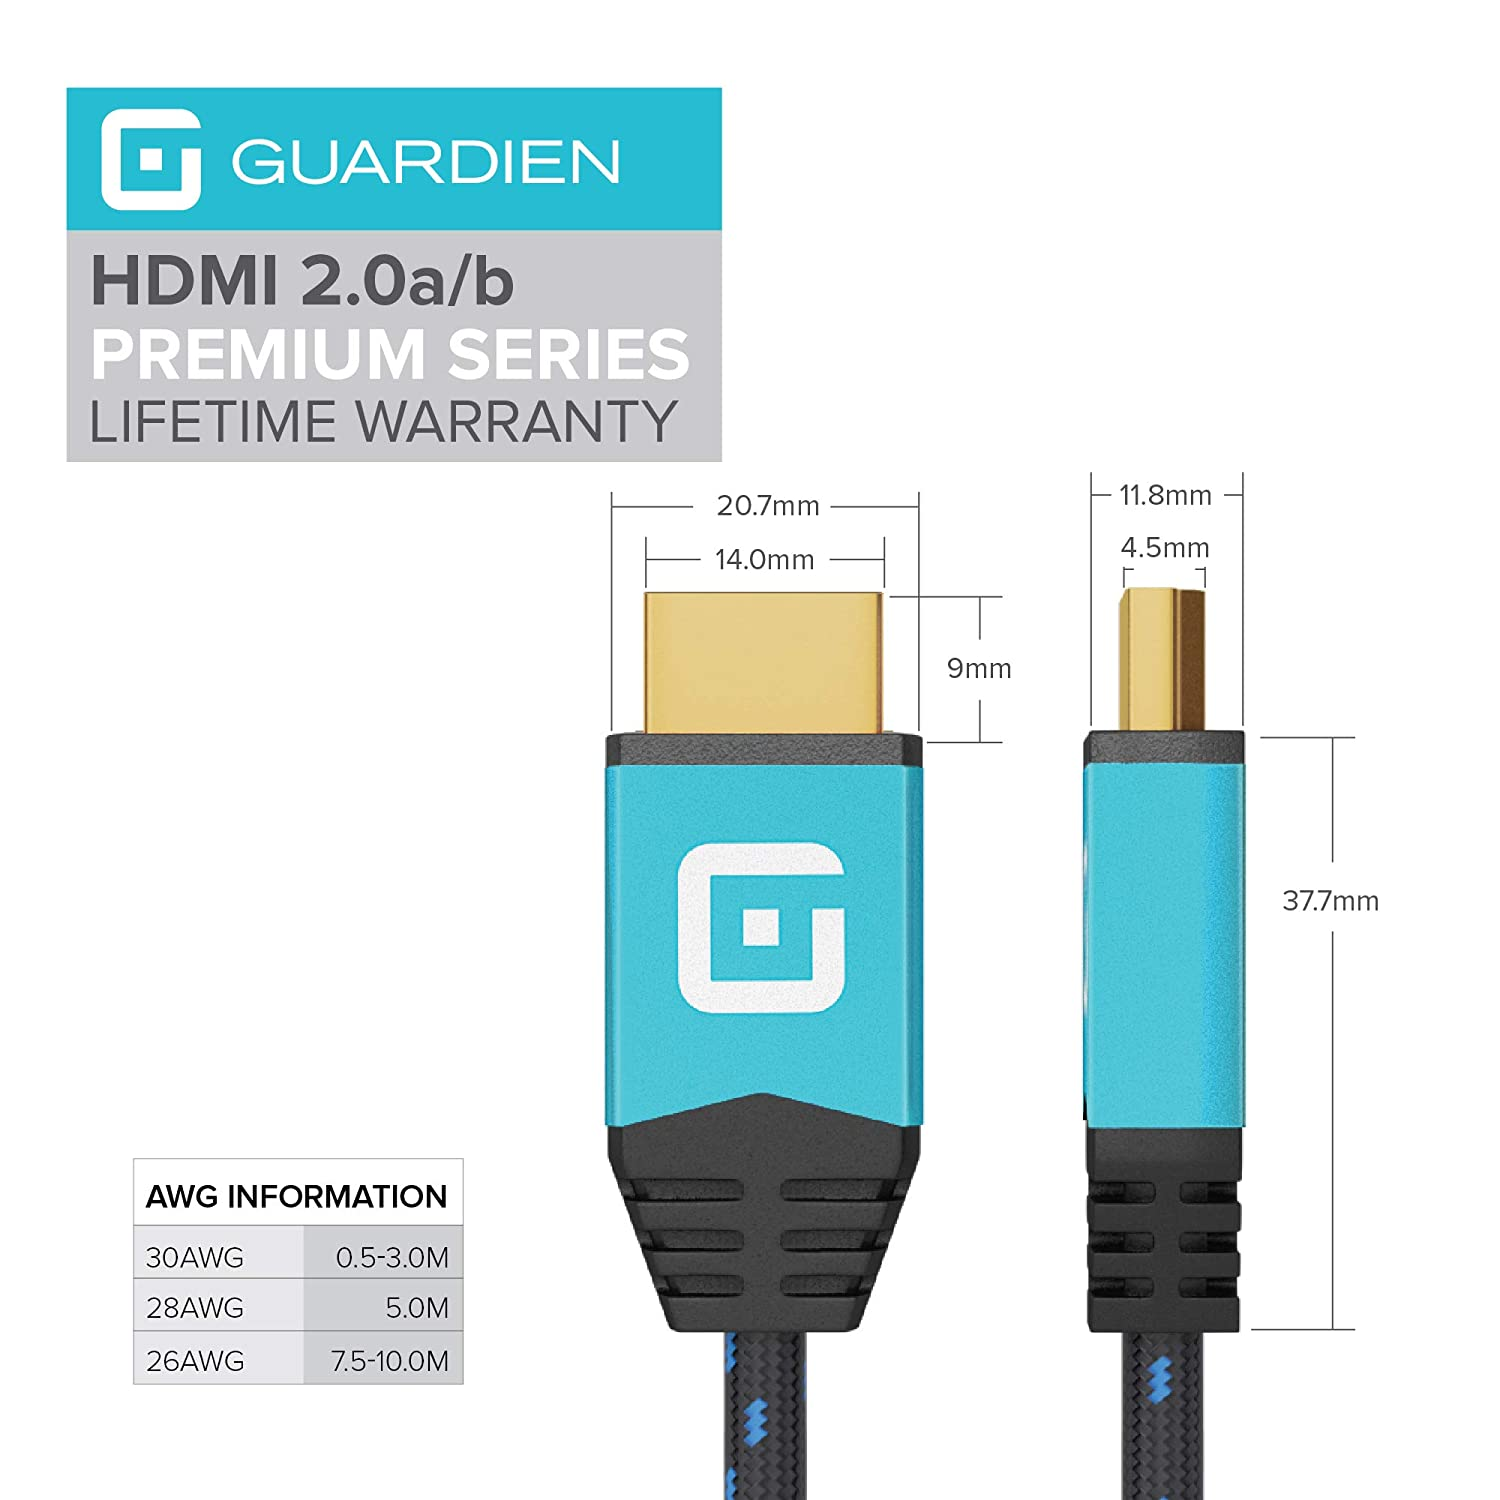 HDMI Cable 10m HDMI Lead - Ultra High Speed 18Gbps HDMI: Amazon.co ...